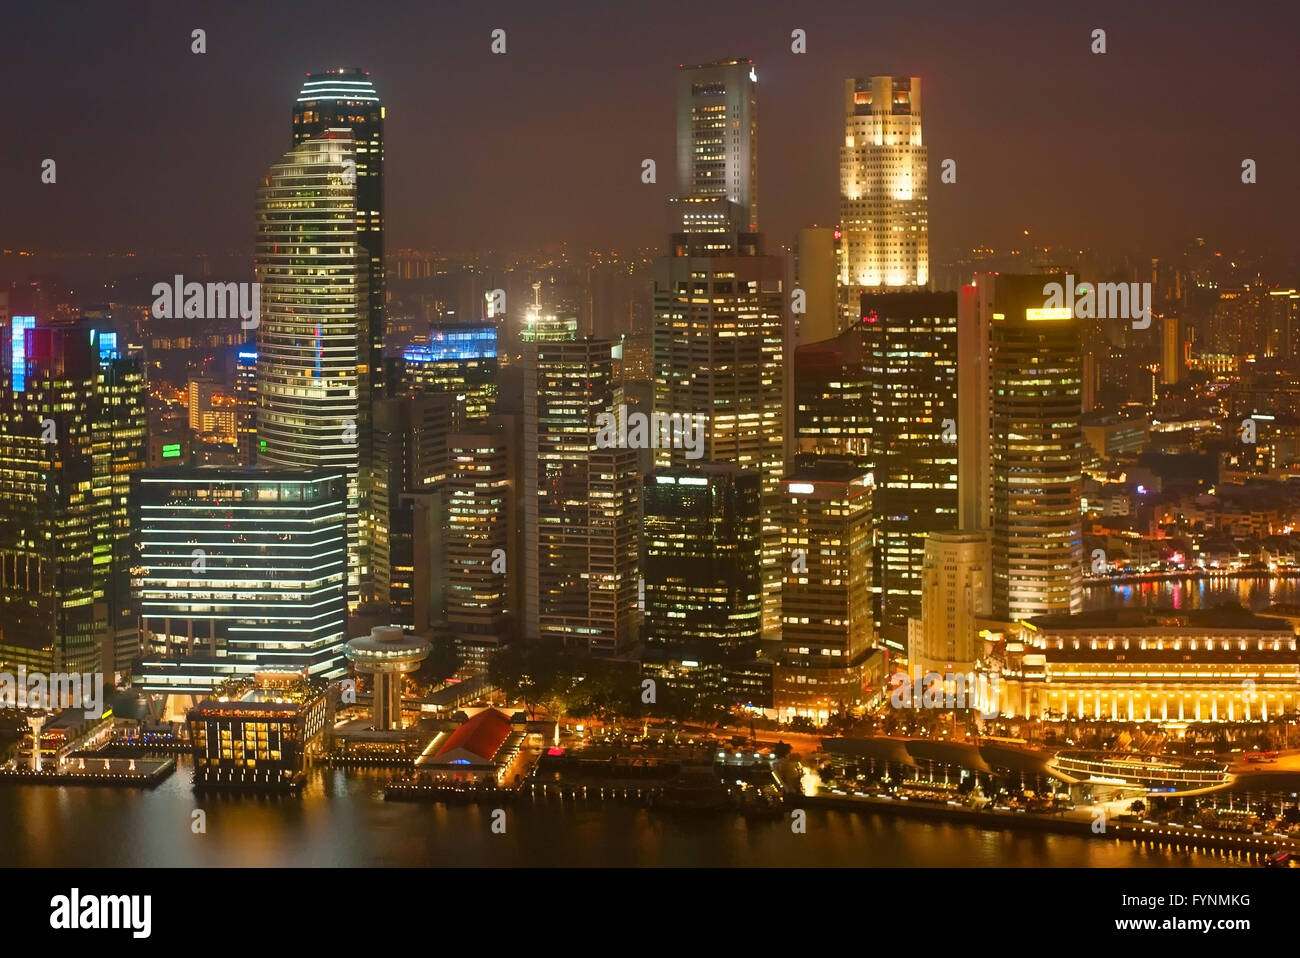 Singapore Downtown Core business architecture at night - Stock Image